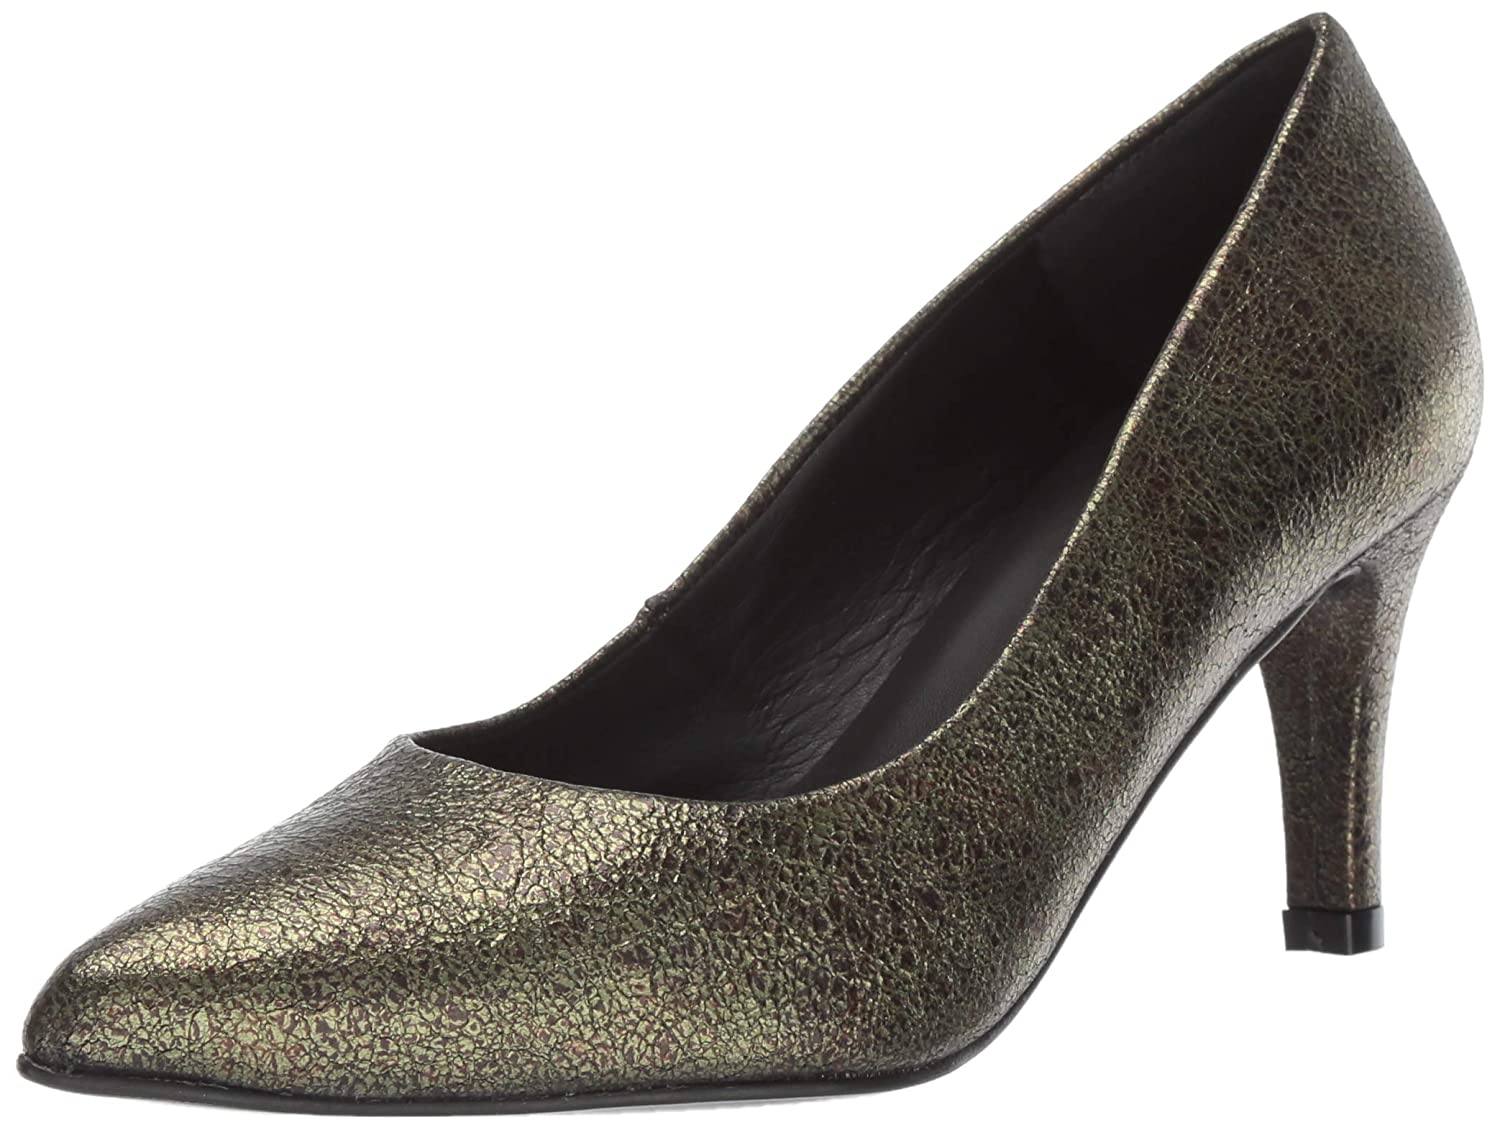 Moss Crackled Leather André Assous Women's Onassis Pump